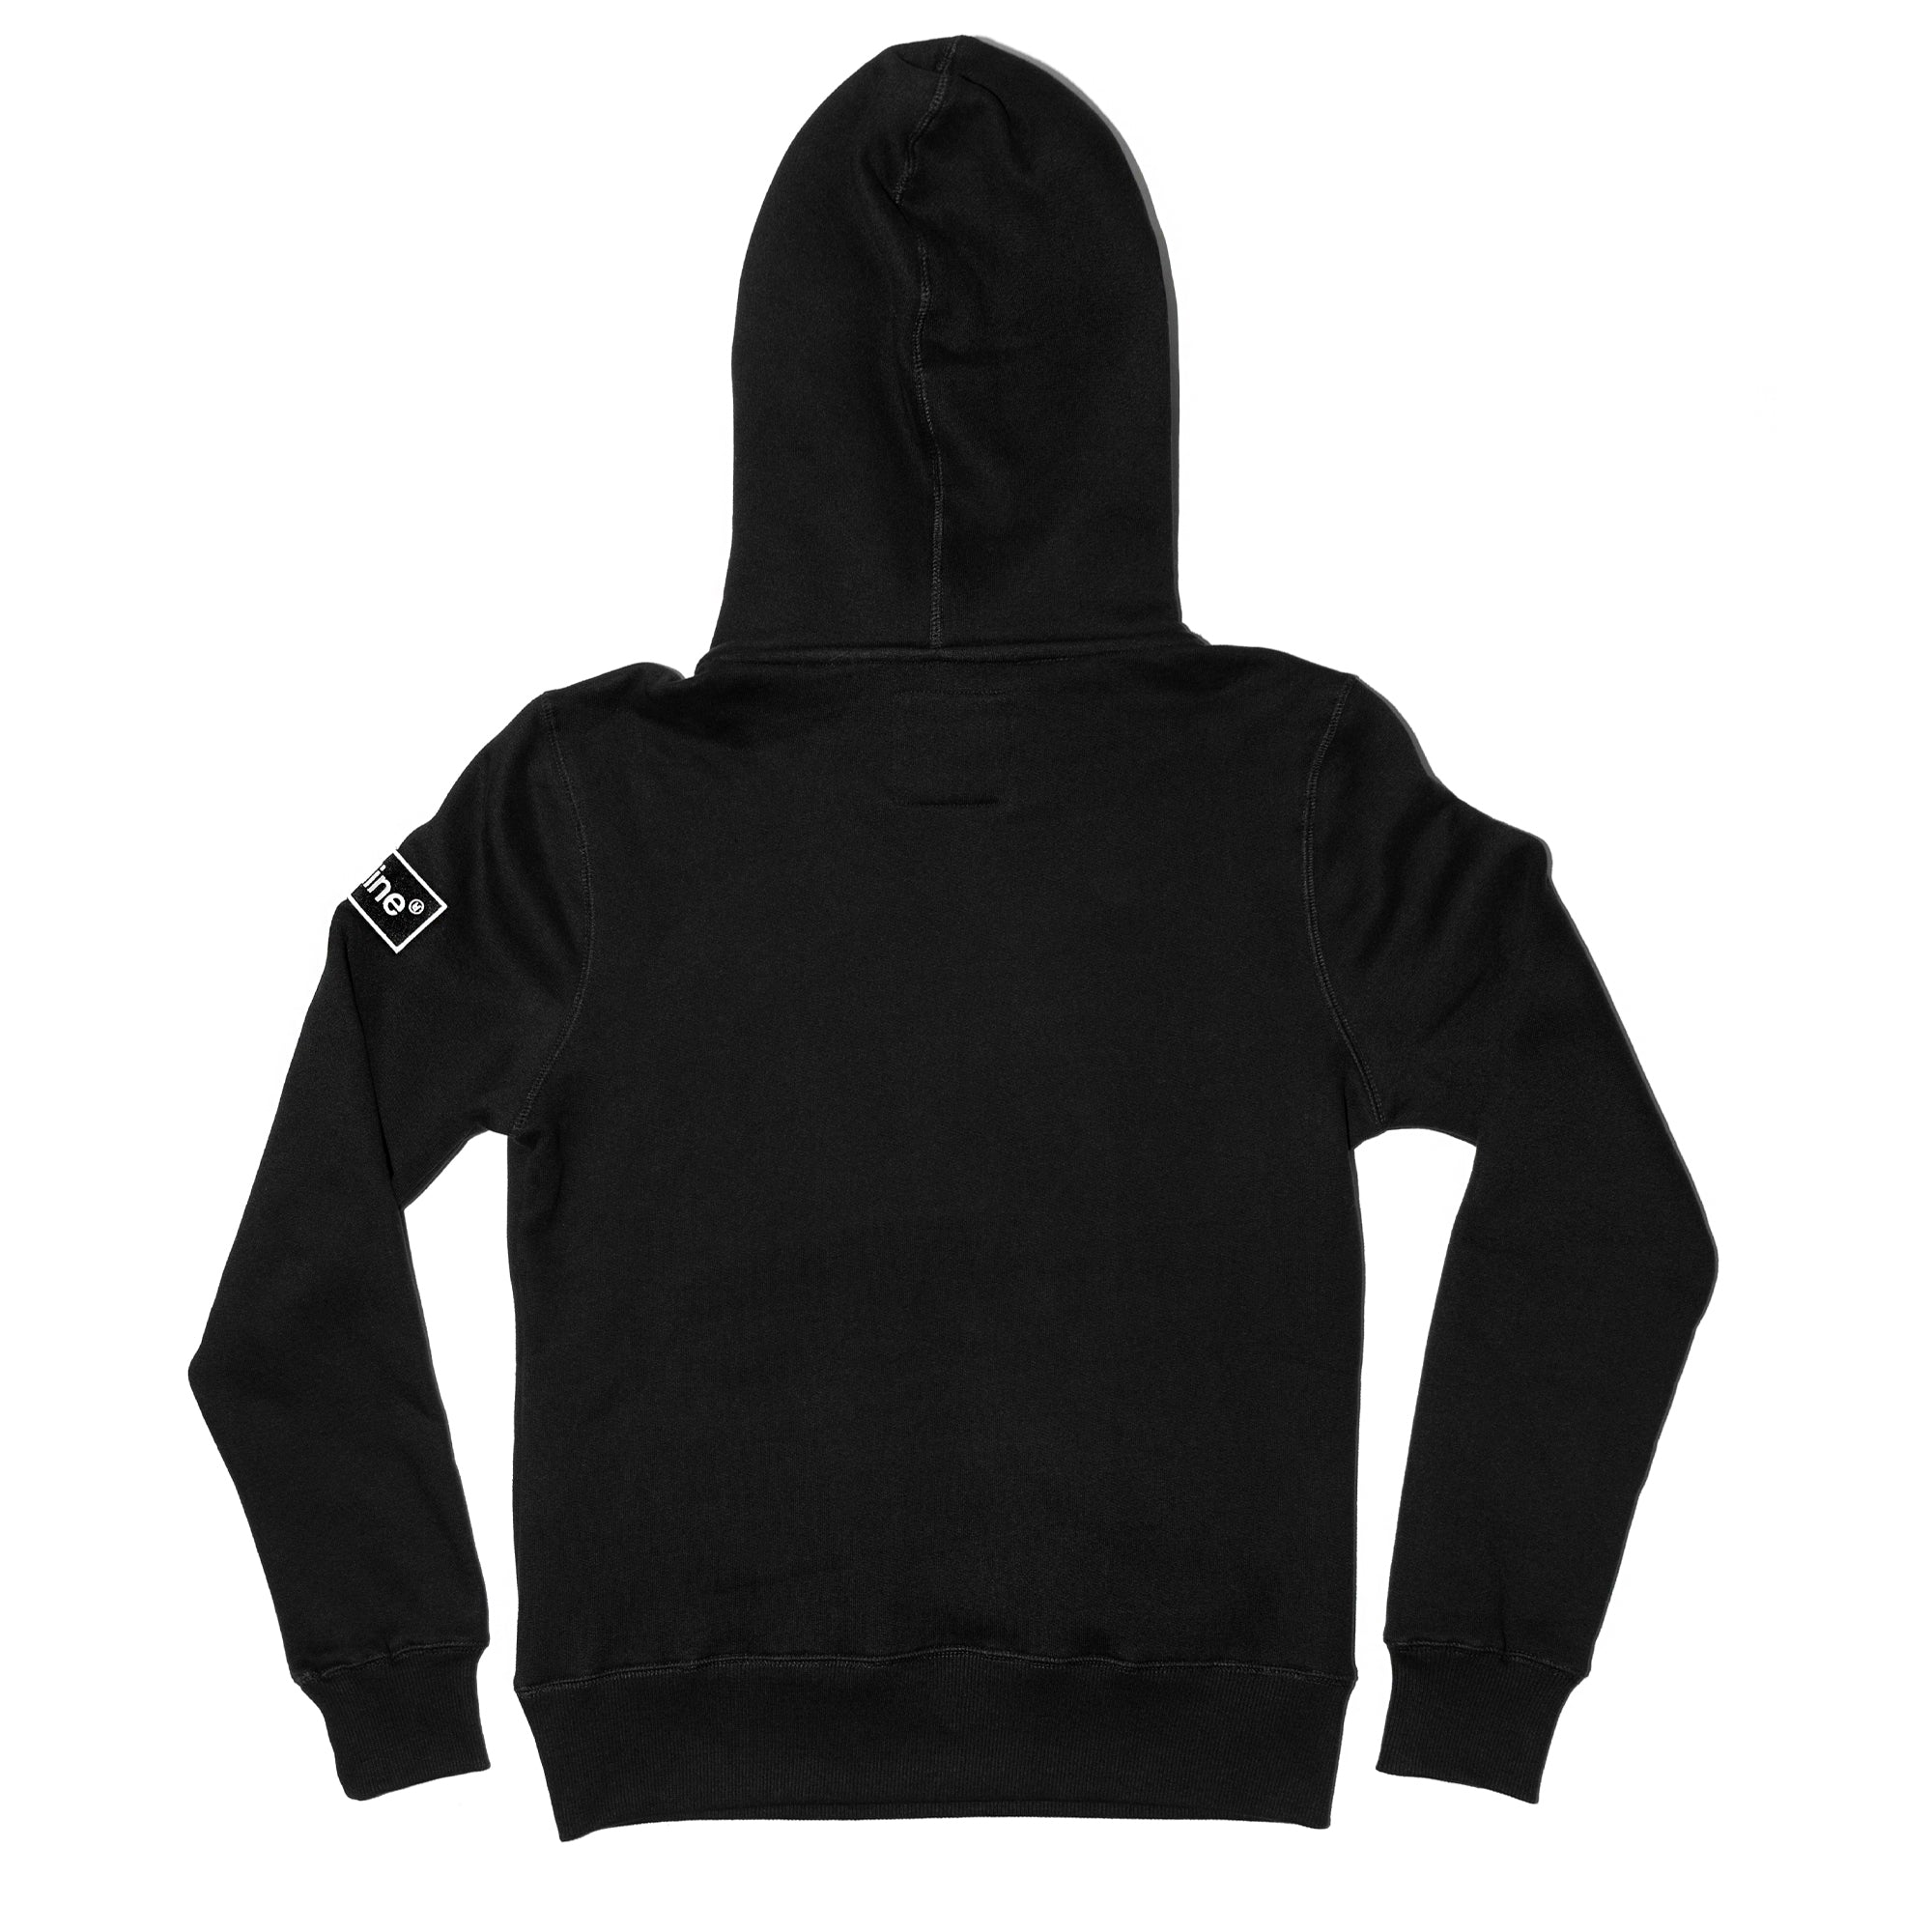 'After Midnight' Pullover Hoodie